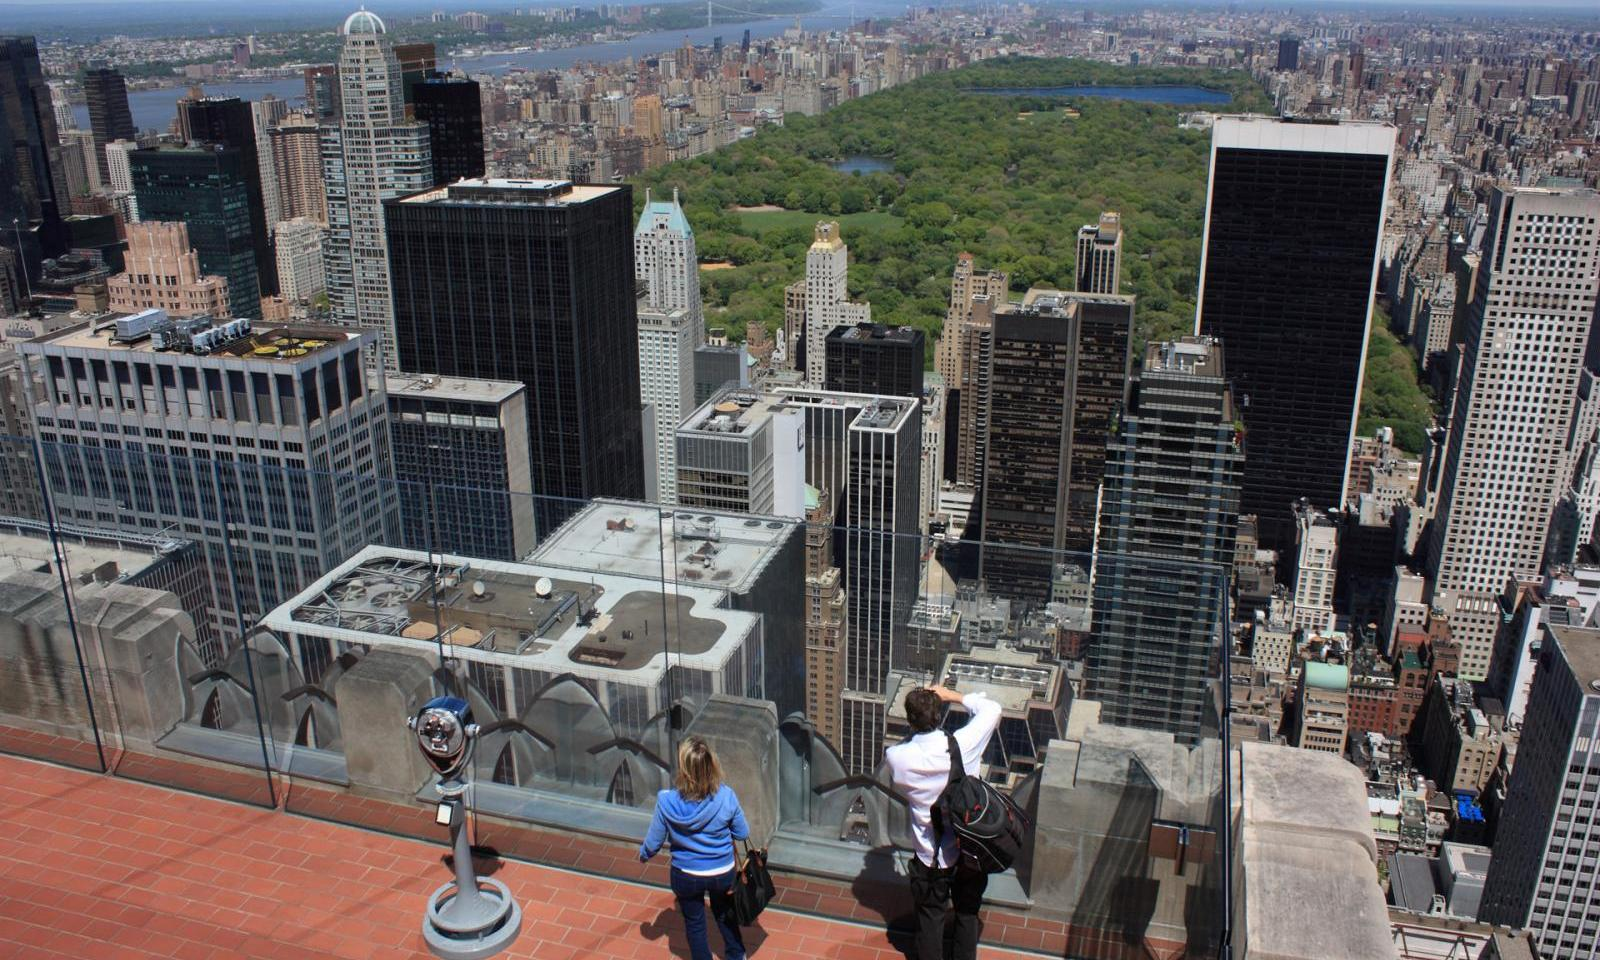 Rockefeller Center Top of the Rock